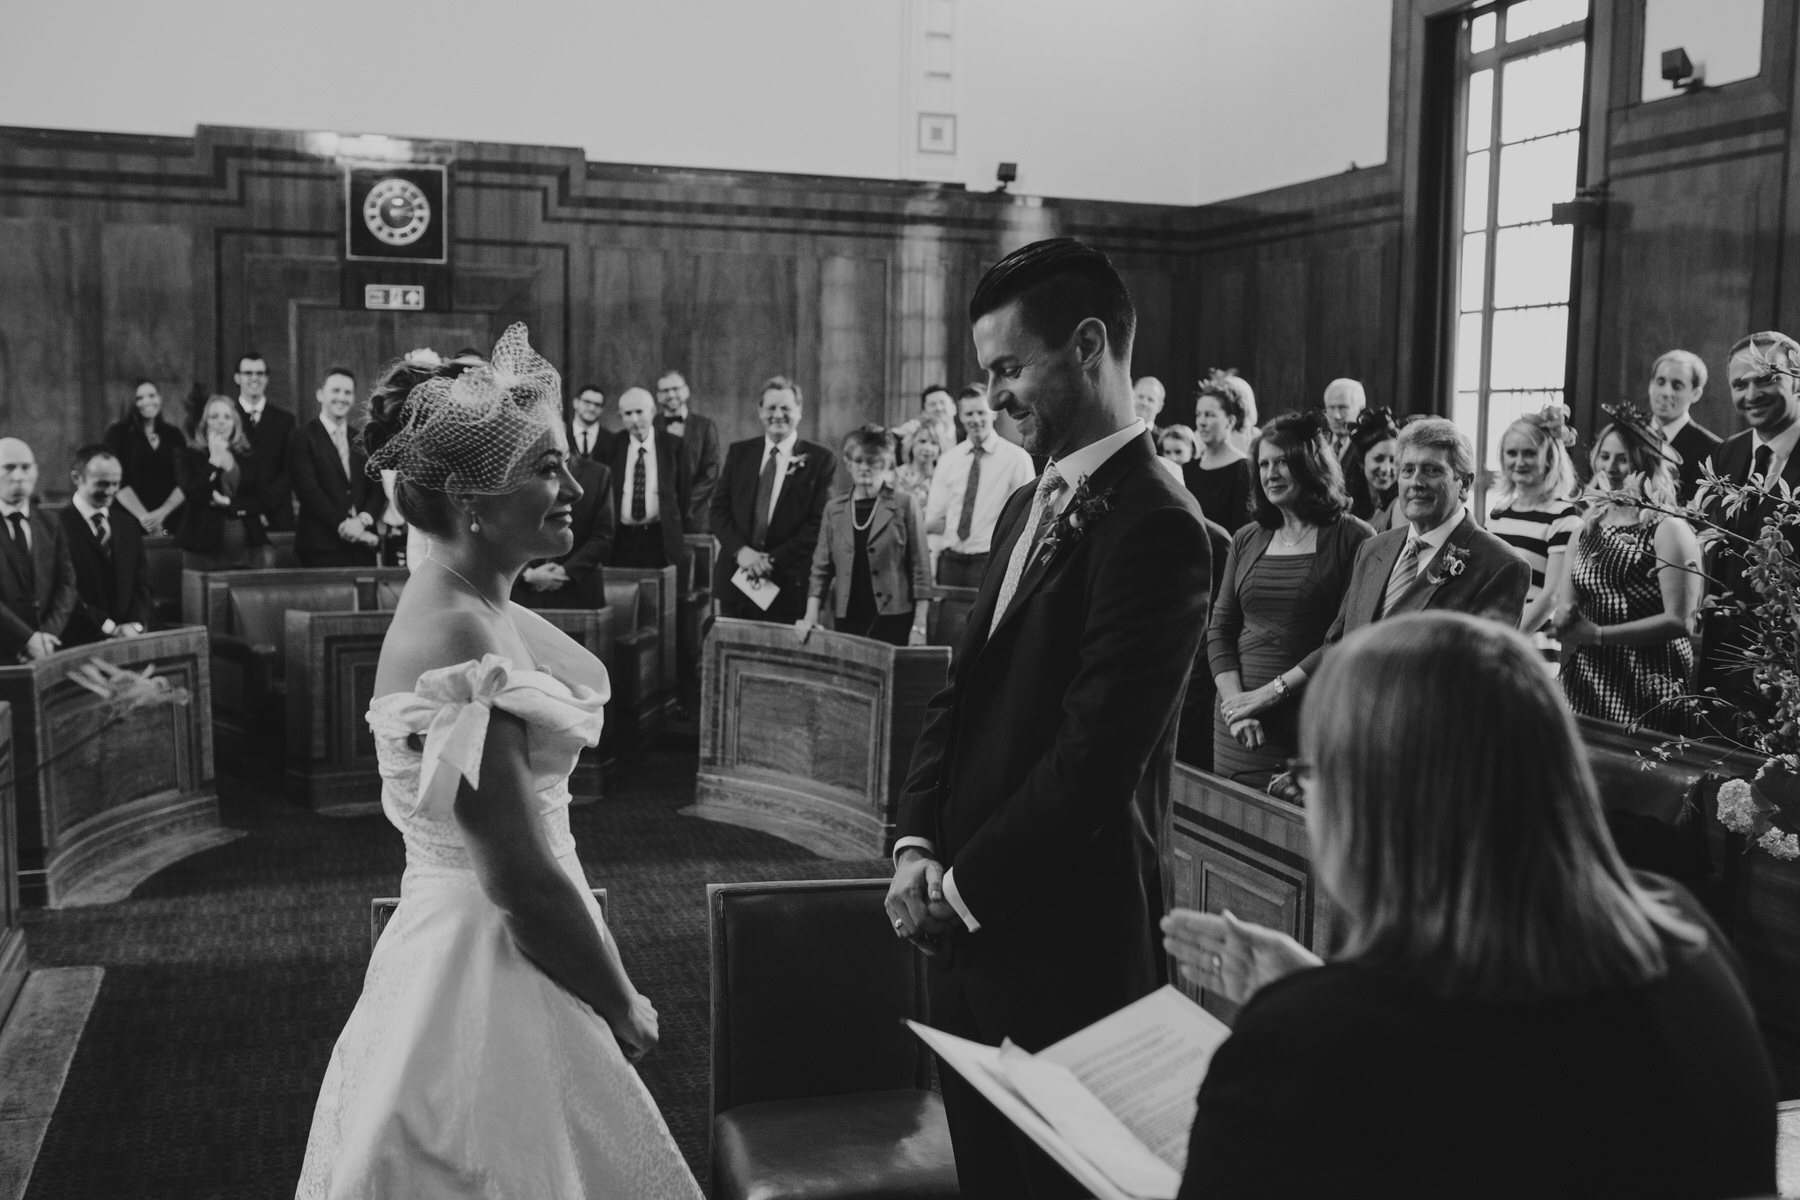 MS-Londesborough-Pub-wedding-Hackney-alternative-photographer-113-groom-laughing-during-ceremony-family-friends-BW.jpg